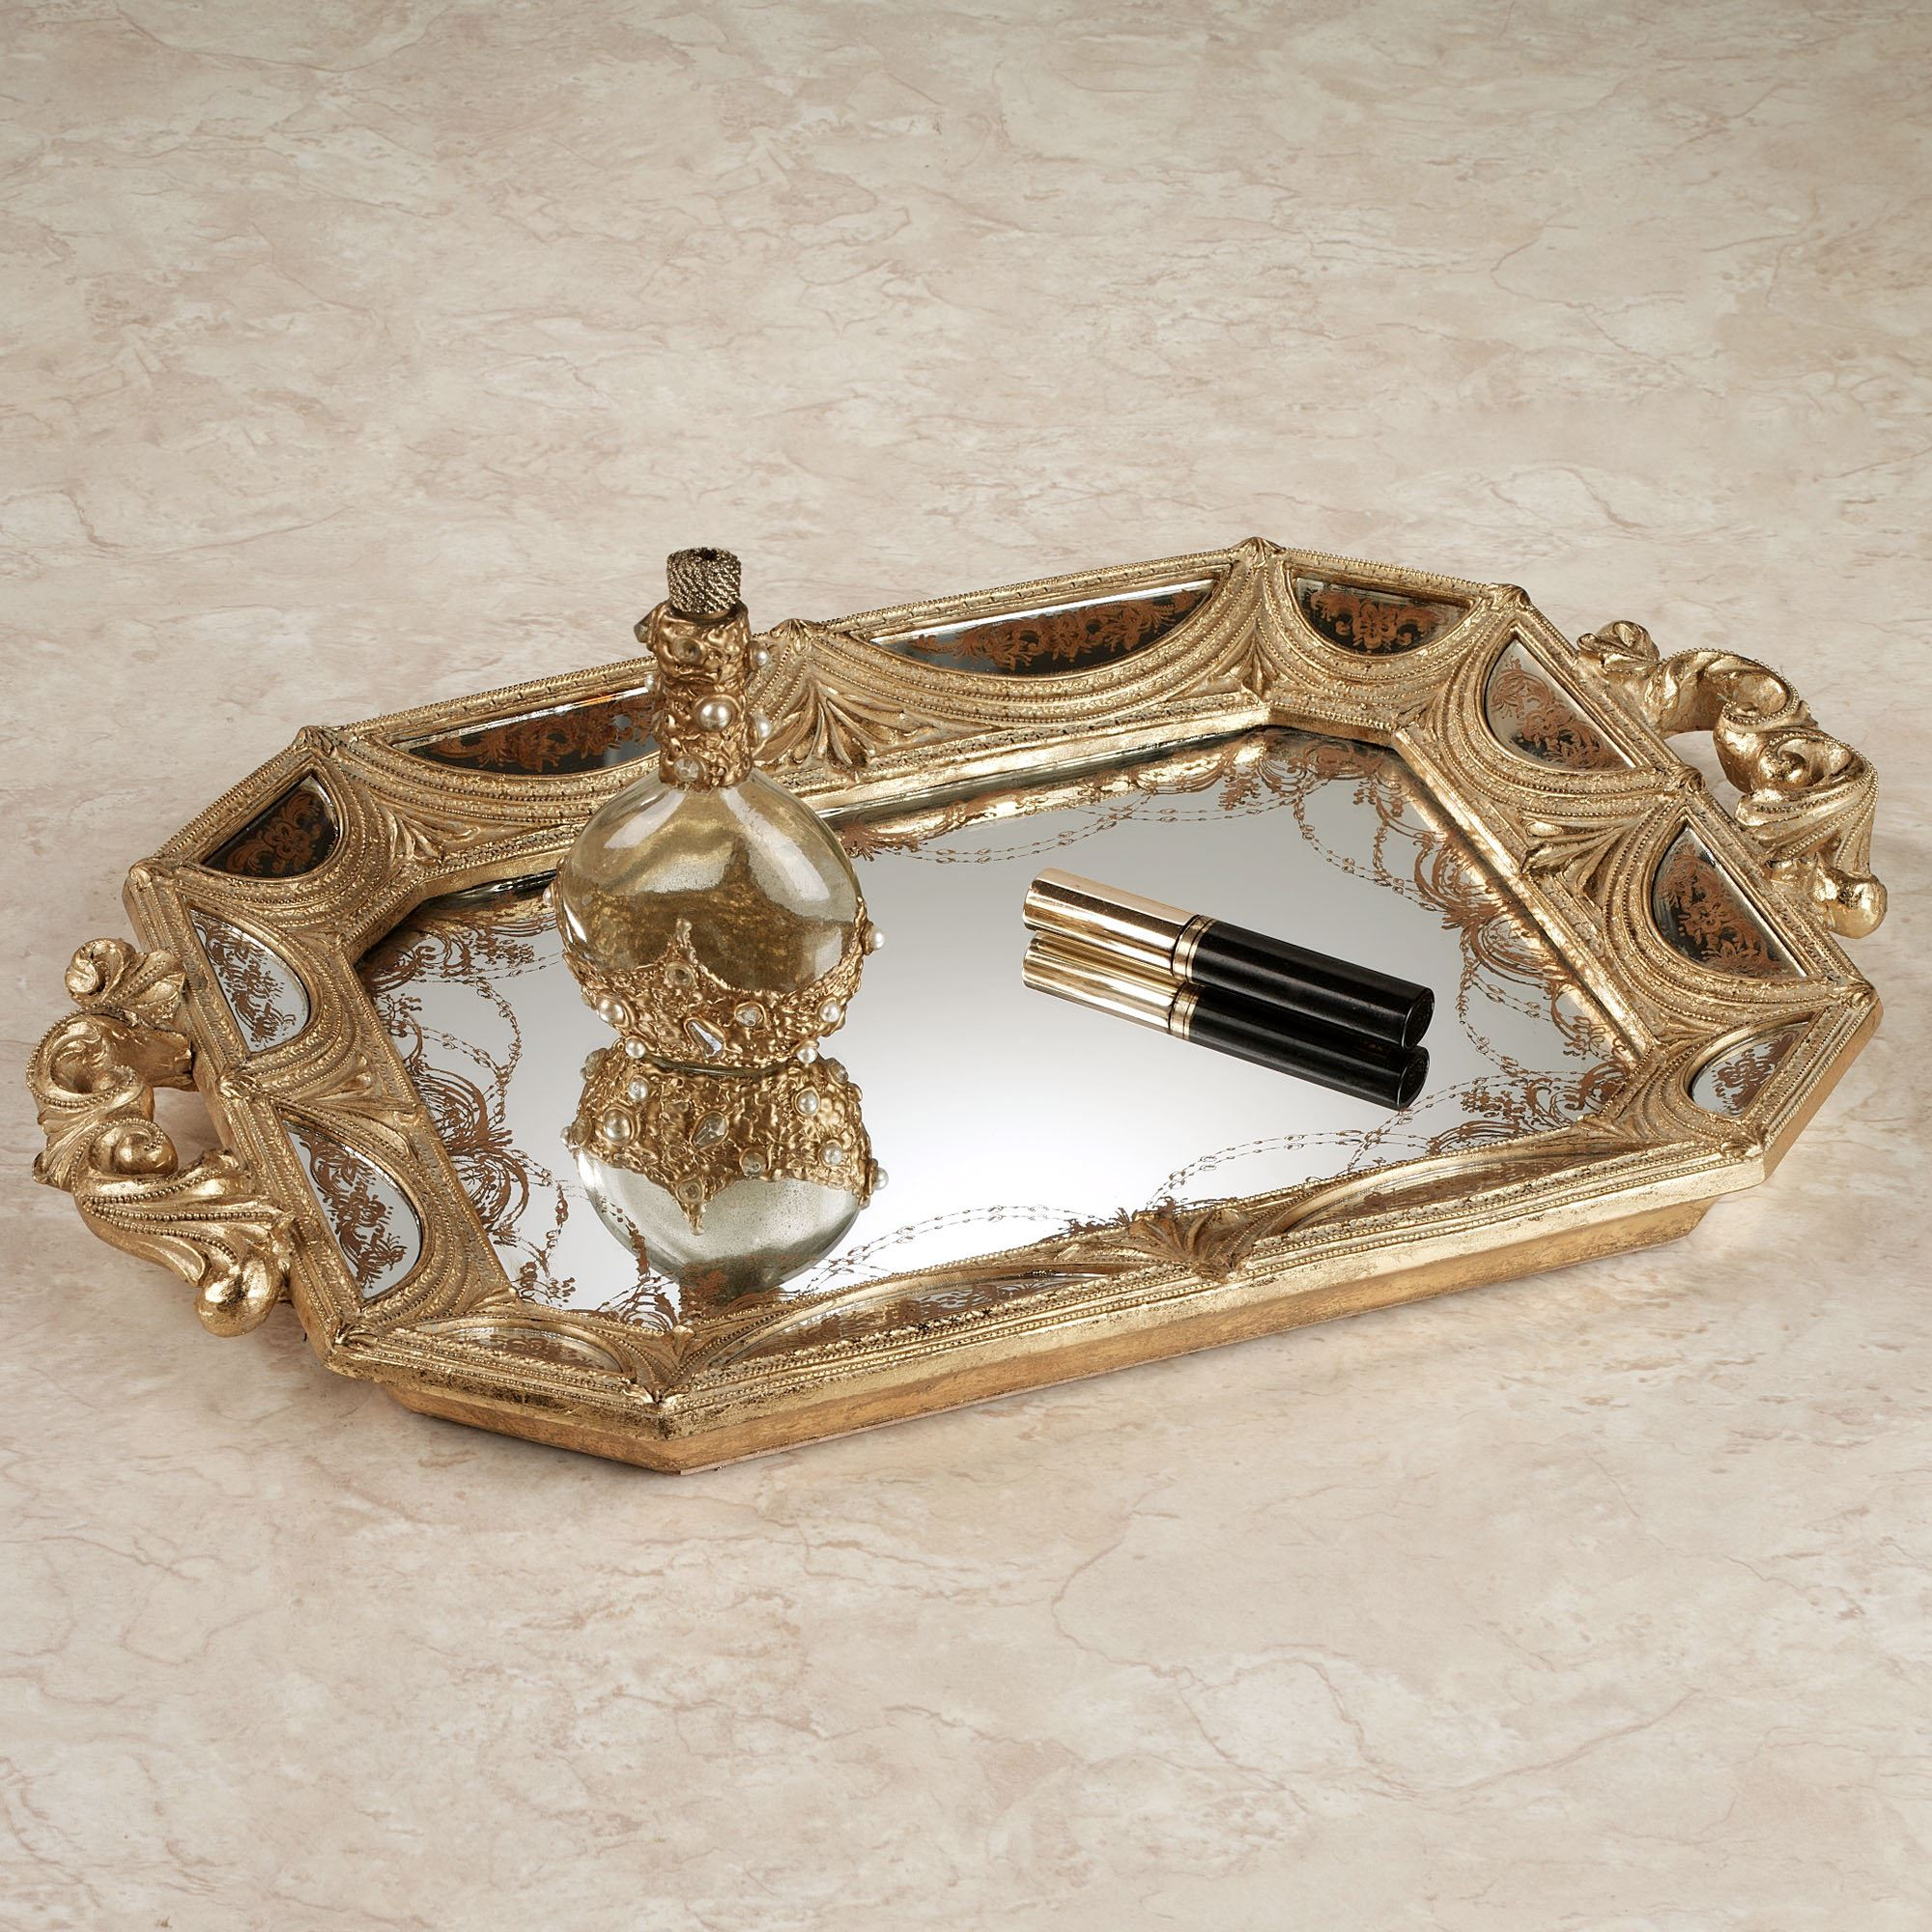 nora mirrored vanity tray gold click to expand - Bathroom Accessories Vanity Tray